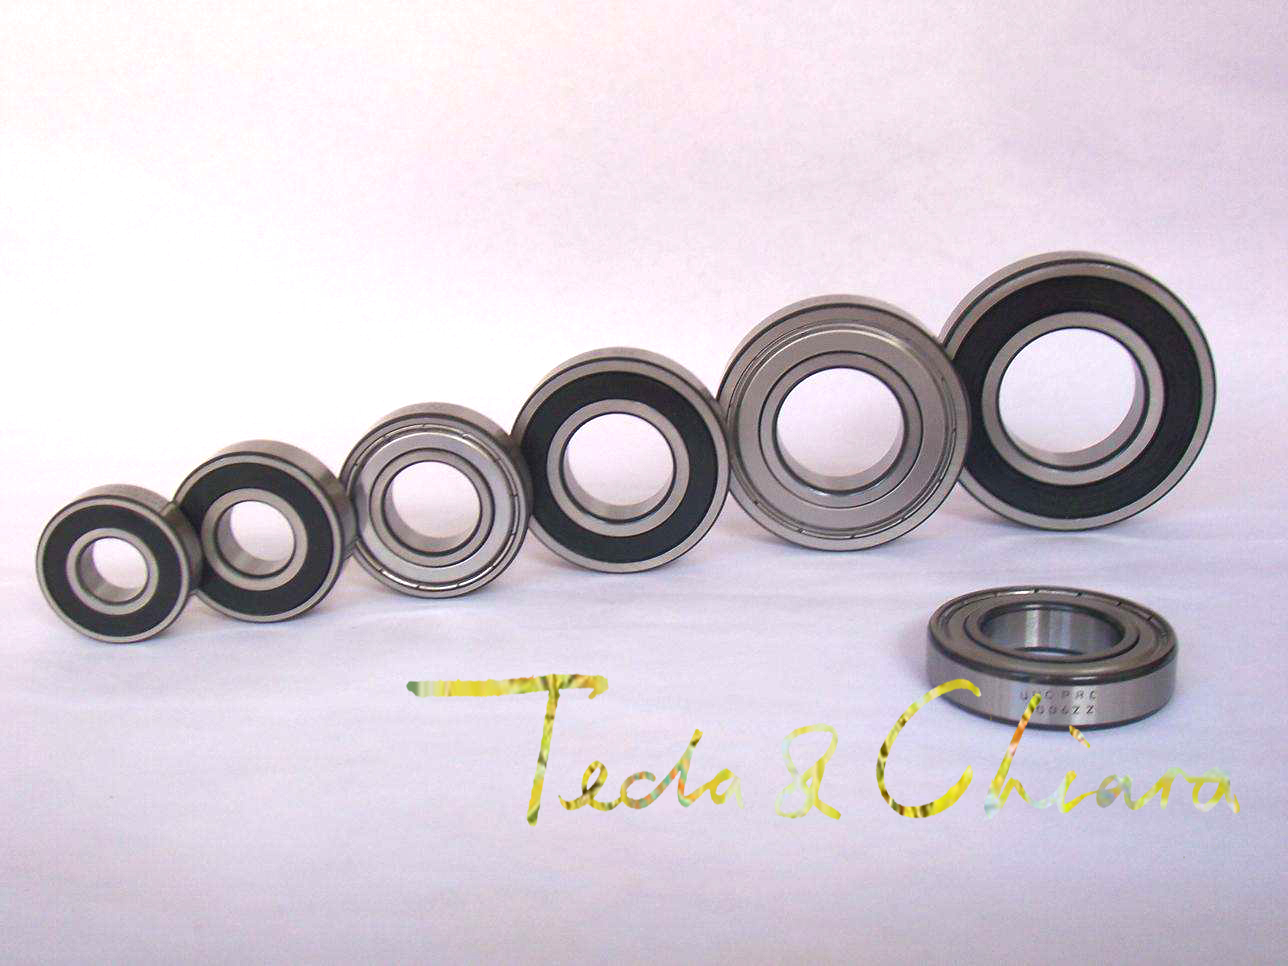 цены 6000 6000ZZ 6000RS 6000-2Z 6000Z 6000-2RS ZZ RS RZ 2RZ Deep Groove Ball Bearings 10 x 26 x 8mm High Quality